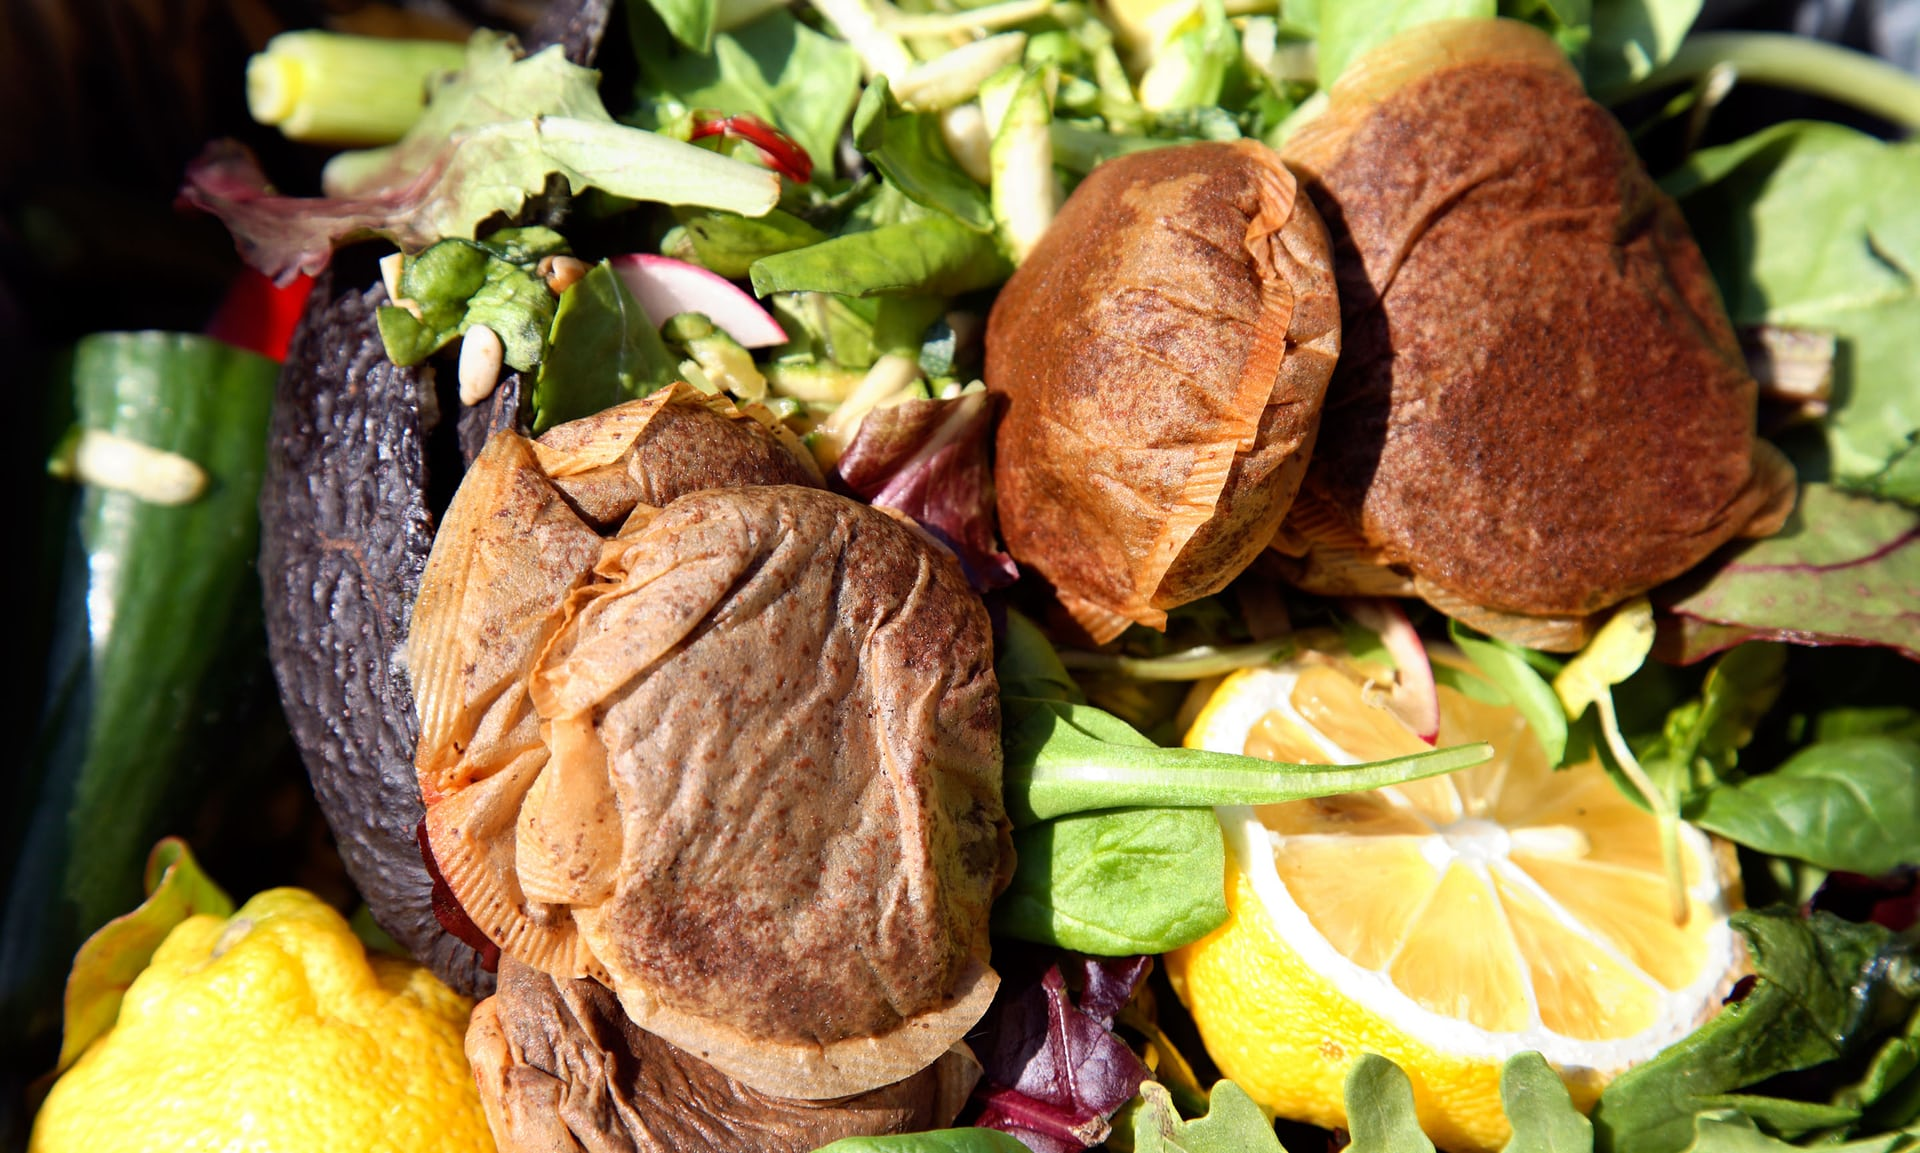 Rotten results: Sainsbury's drops project to halve food waste